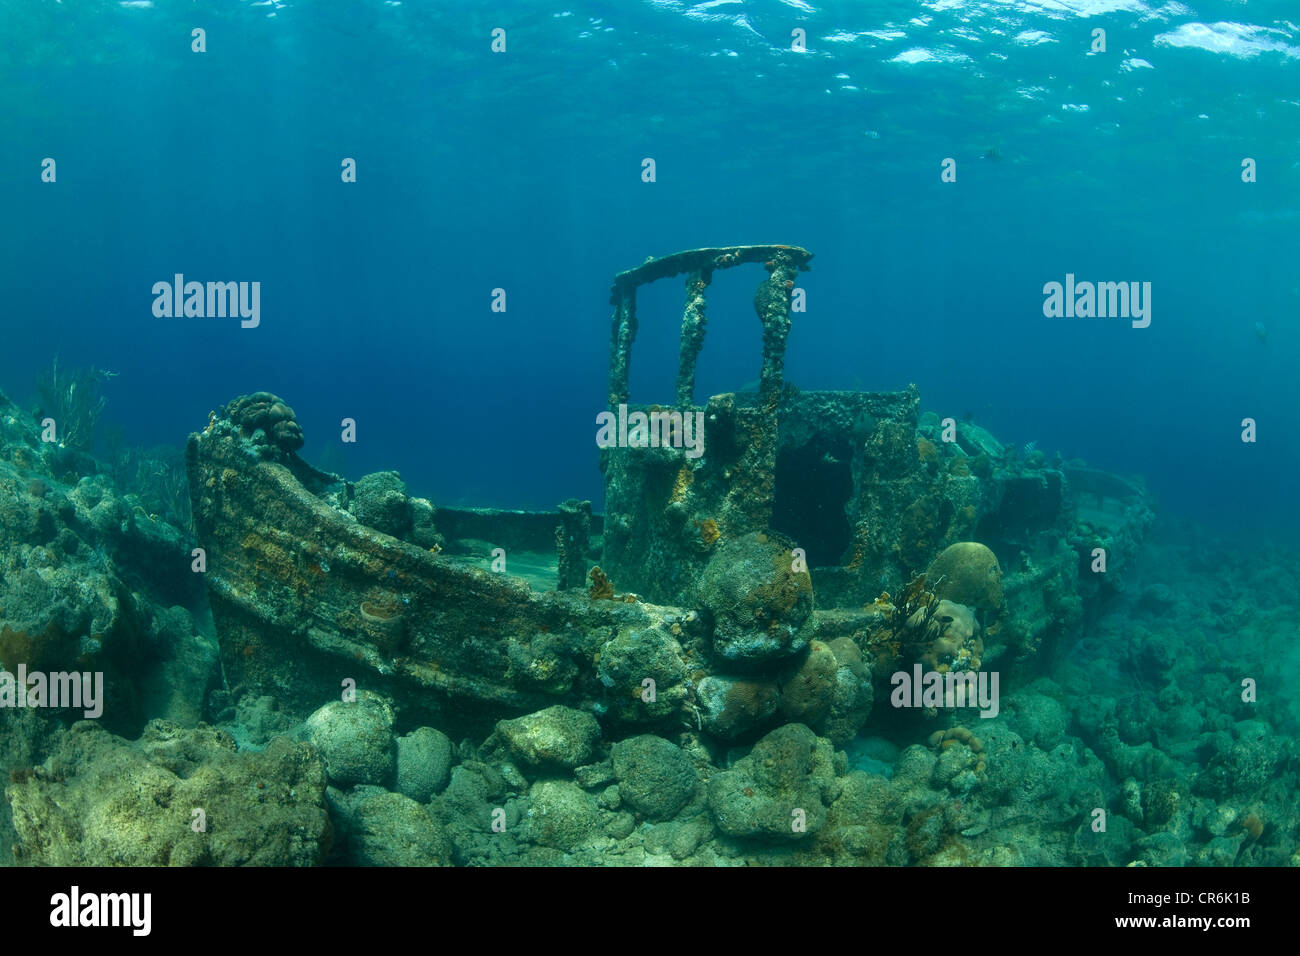 Wreck, tugboat, at a depth of 7 meters, gravel bay off Caracas Island, Curacao, former Netherlands Antilles, Caribbean - Stock Image